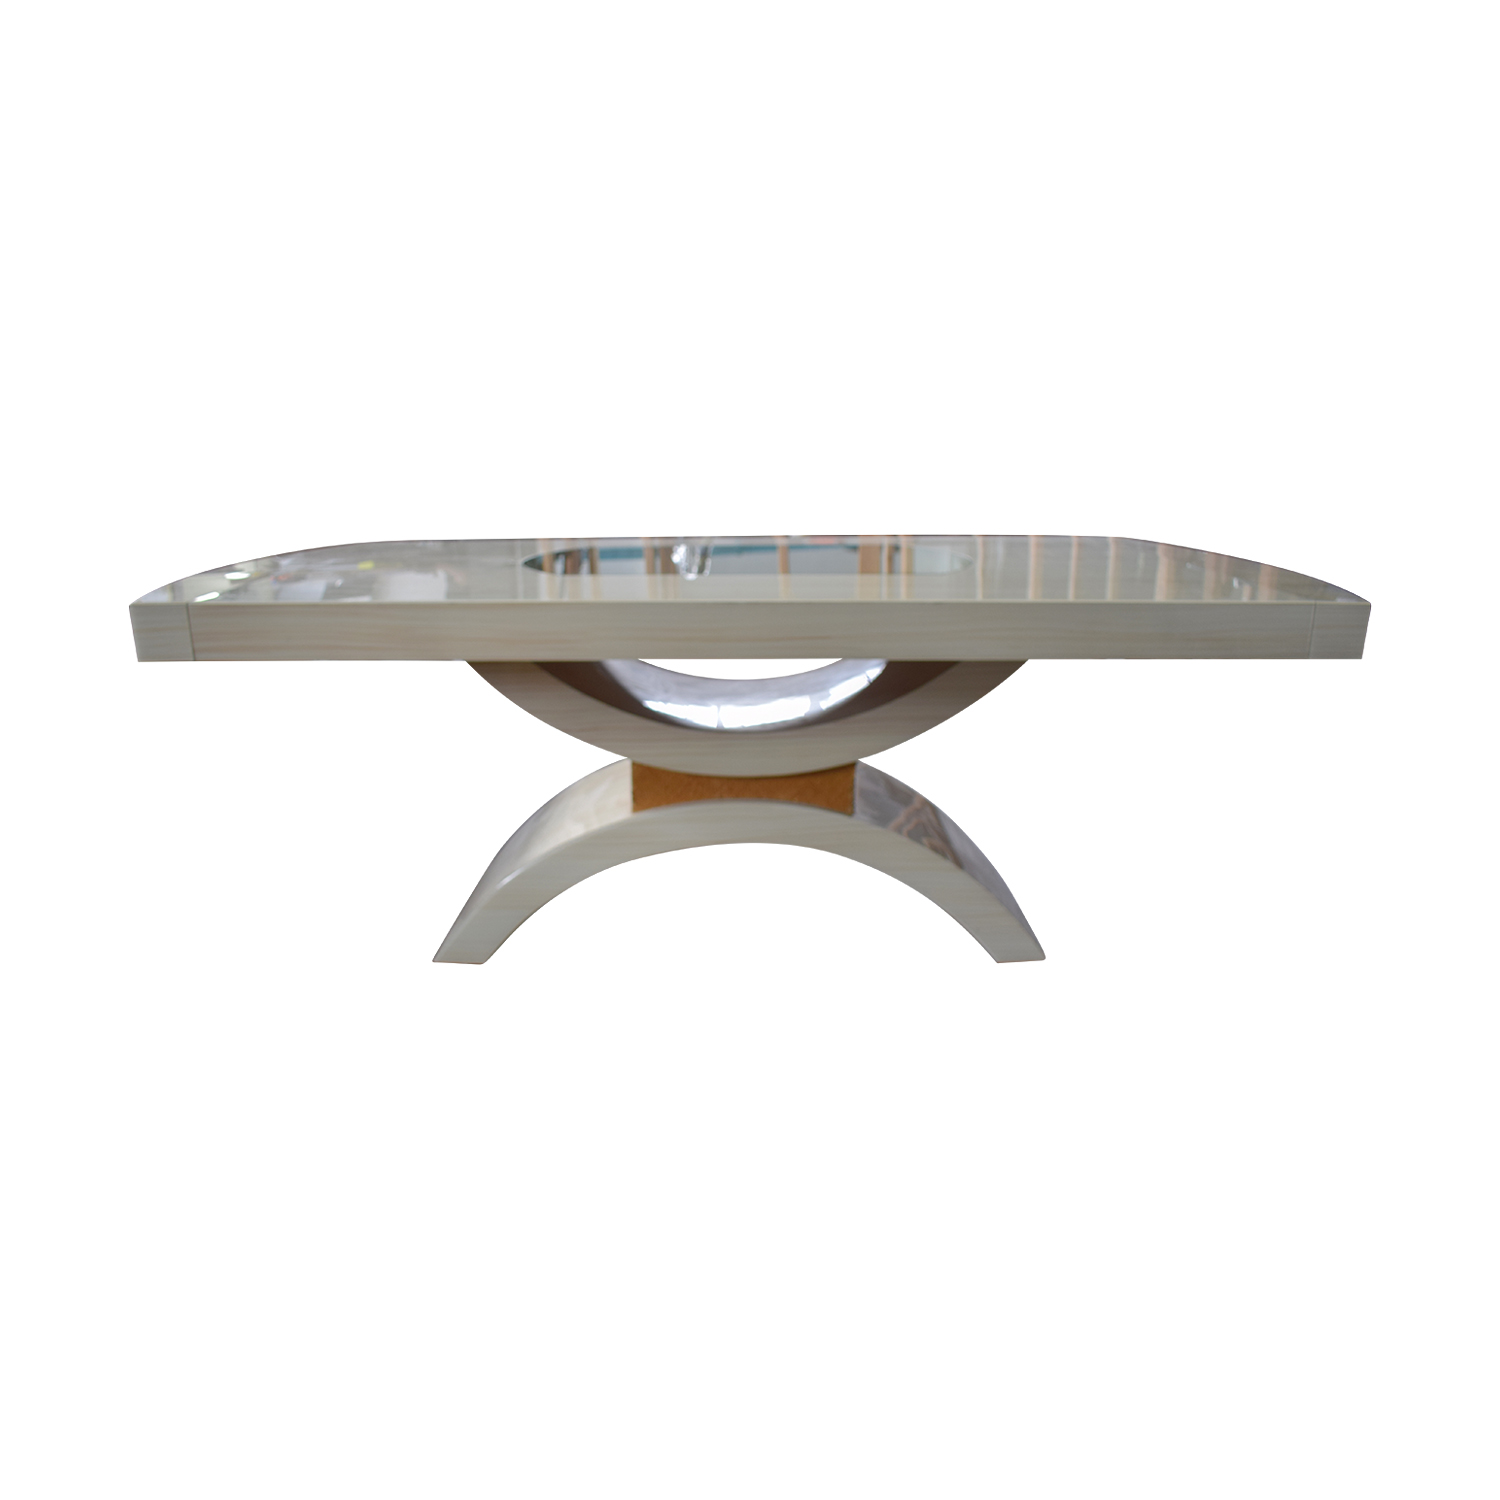 Glassworks Glassworks Beige with Glass Center Dining Table and Arched Pedestal Dinner Tables